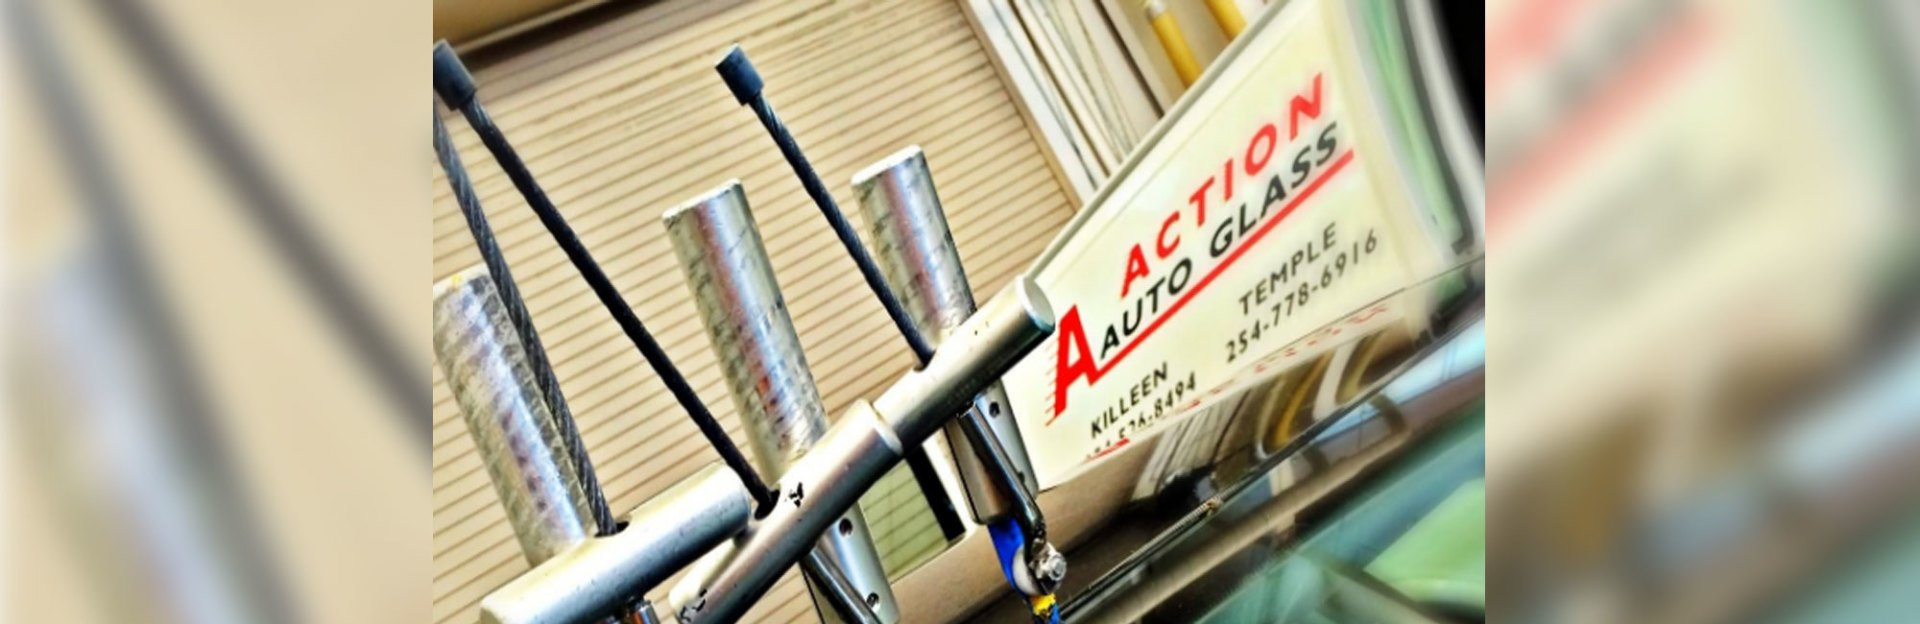 Aaction Auto Glass